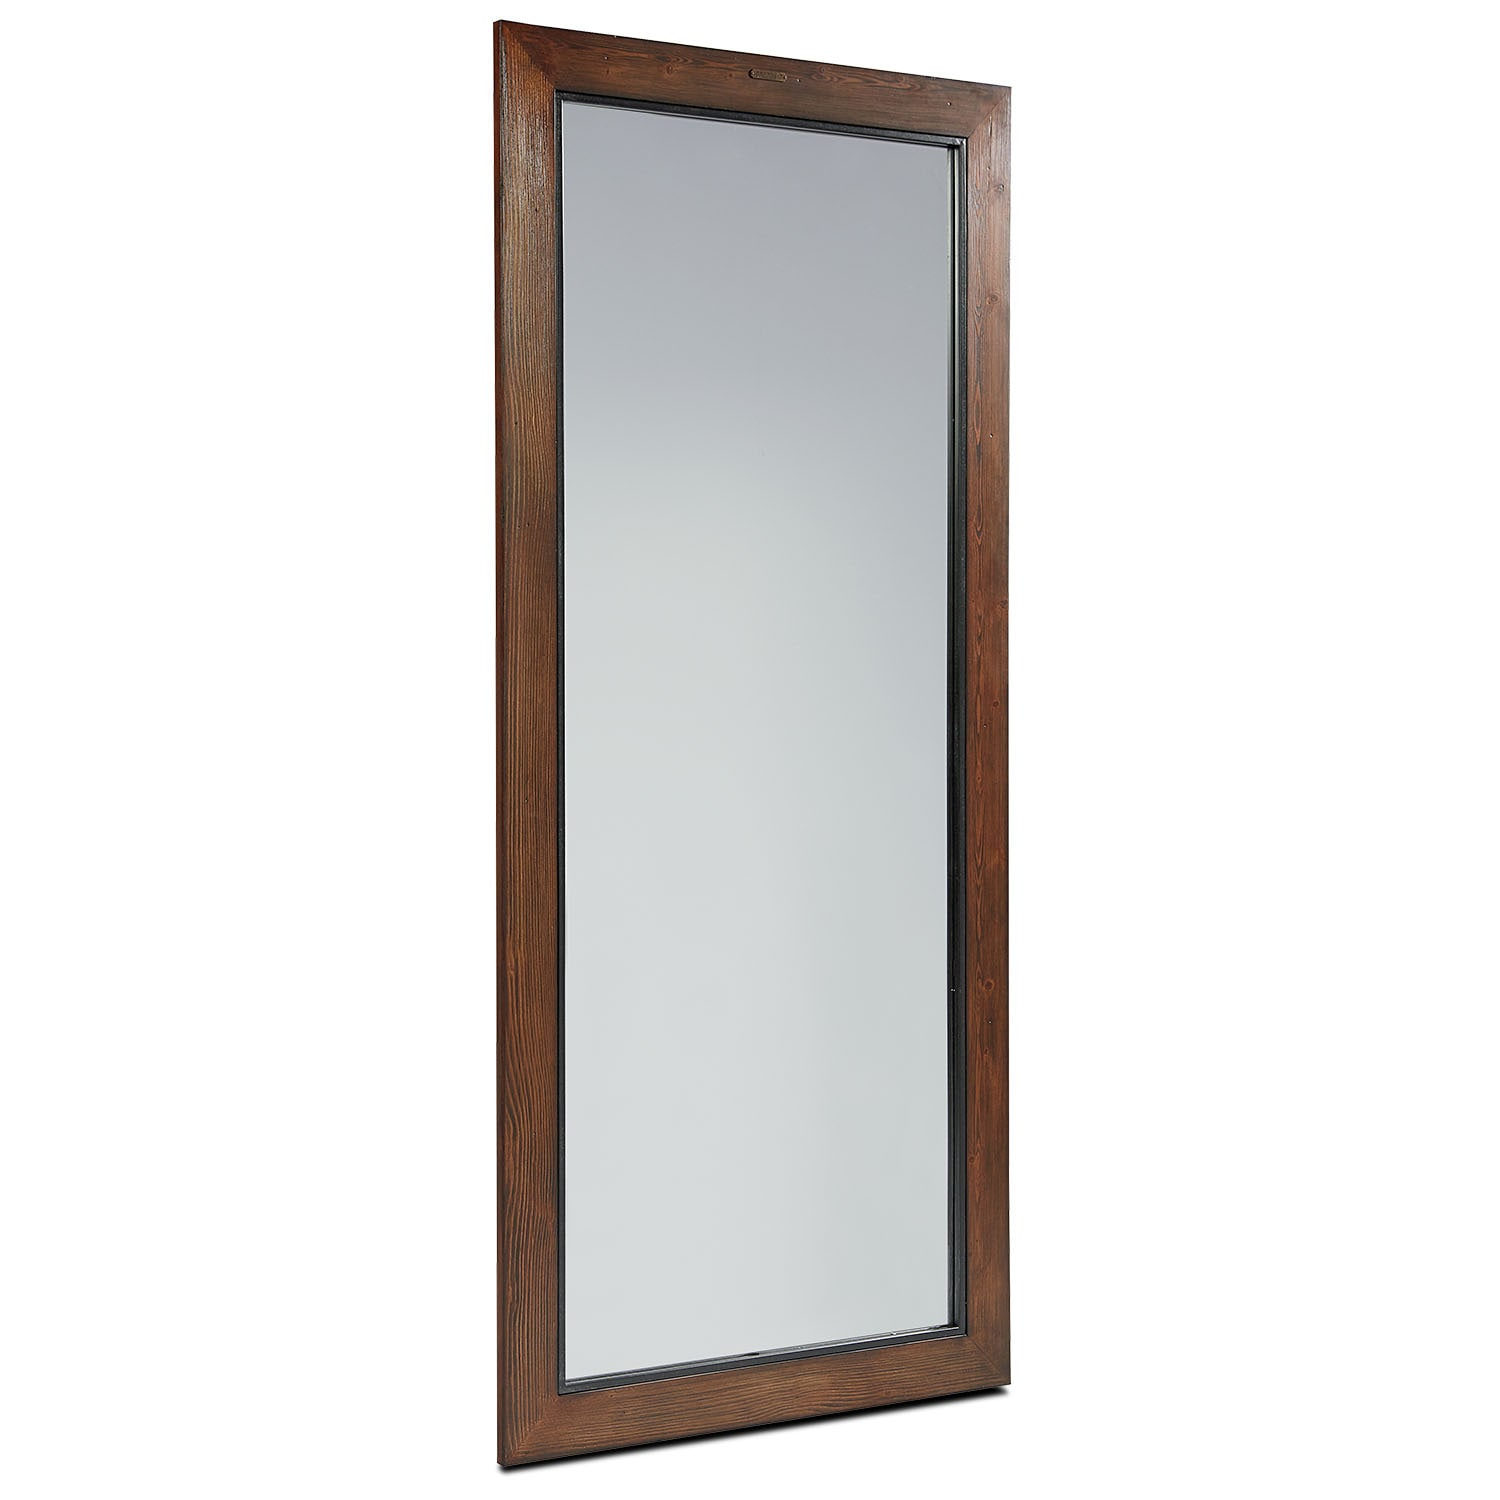 Bedroom Furniture - Framework Floor Standing Mirror